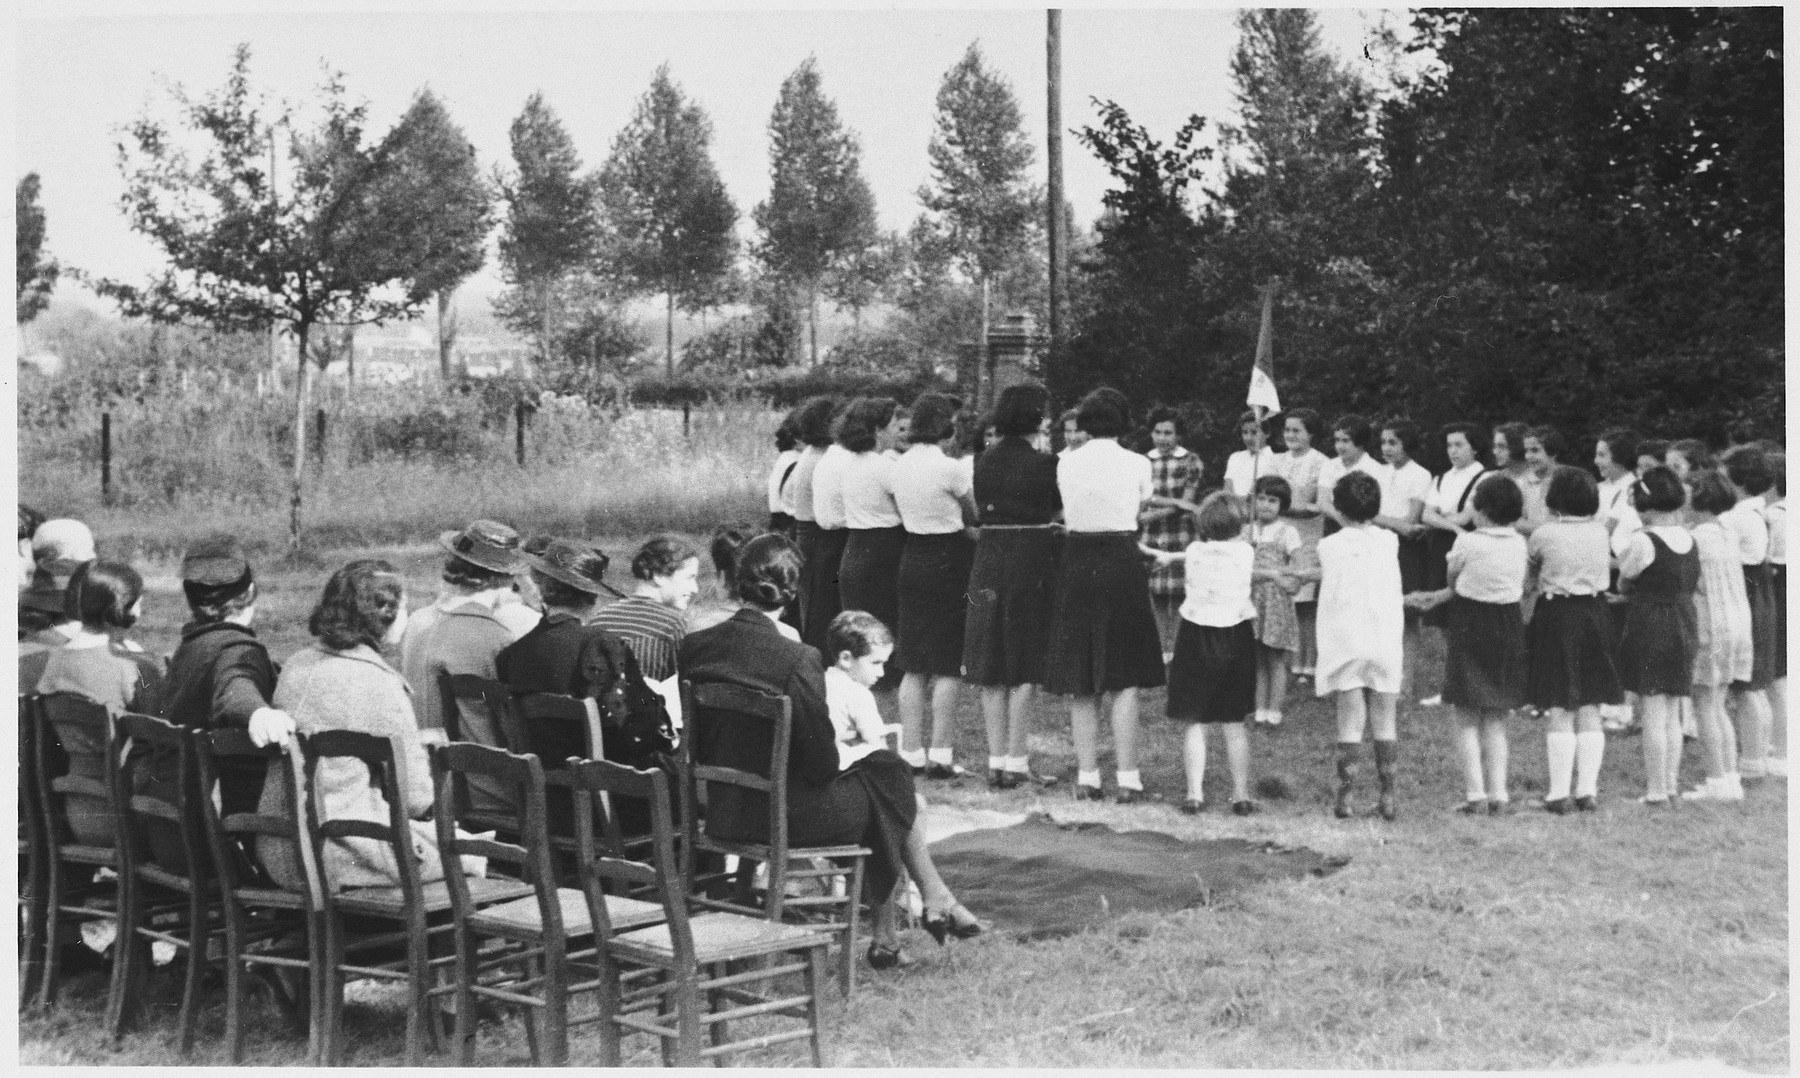 Supporters of the Zuen children's home watch the girls perform a flag-raising ceremony.  Among those seated is the director of the home, Mrs. Elka Frank.  Standing near the flag in the plaid dress is Else Rosenblatt (now Stern).